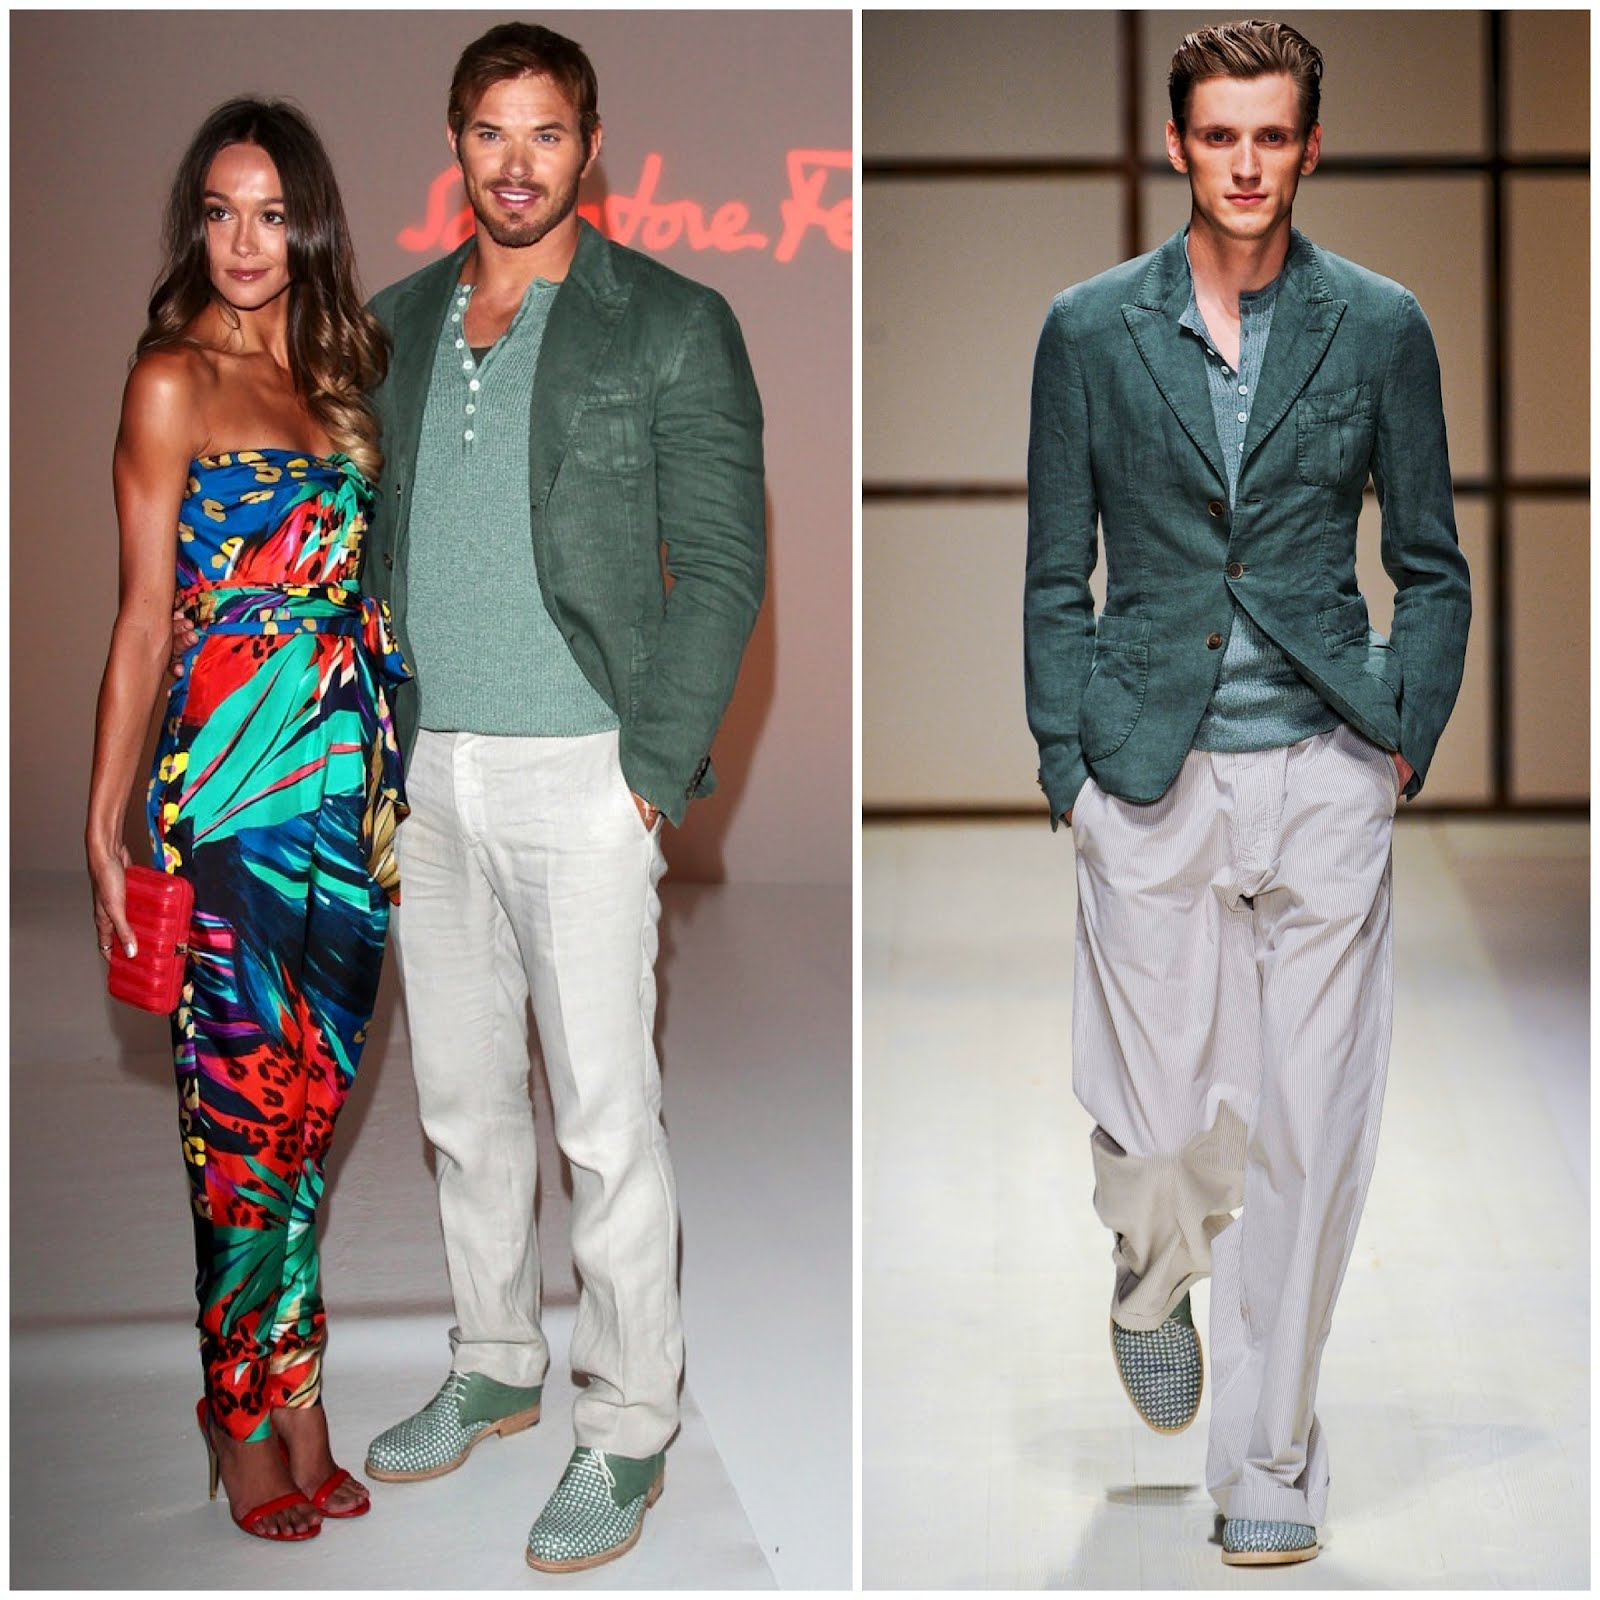 00o00 menswear london blog salvatore ferragamo Spring summer 2013 SS2013 milan fashion week Kellan Lutz